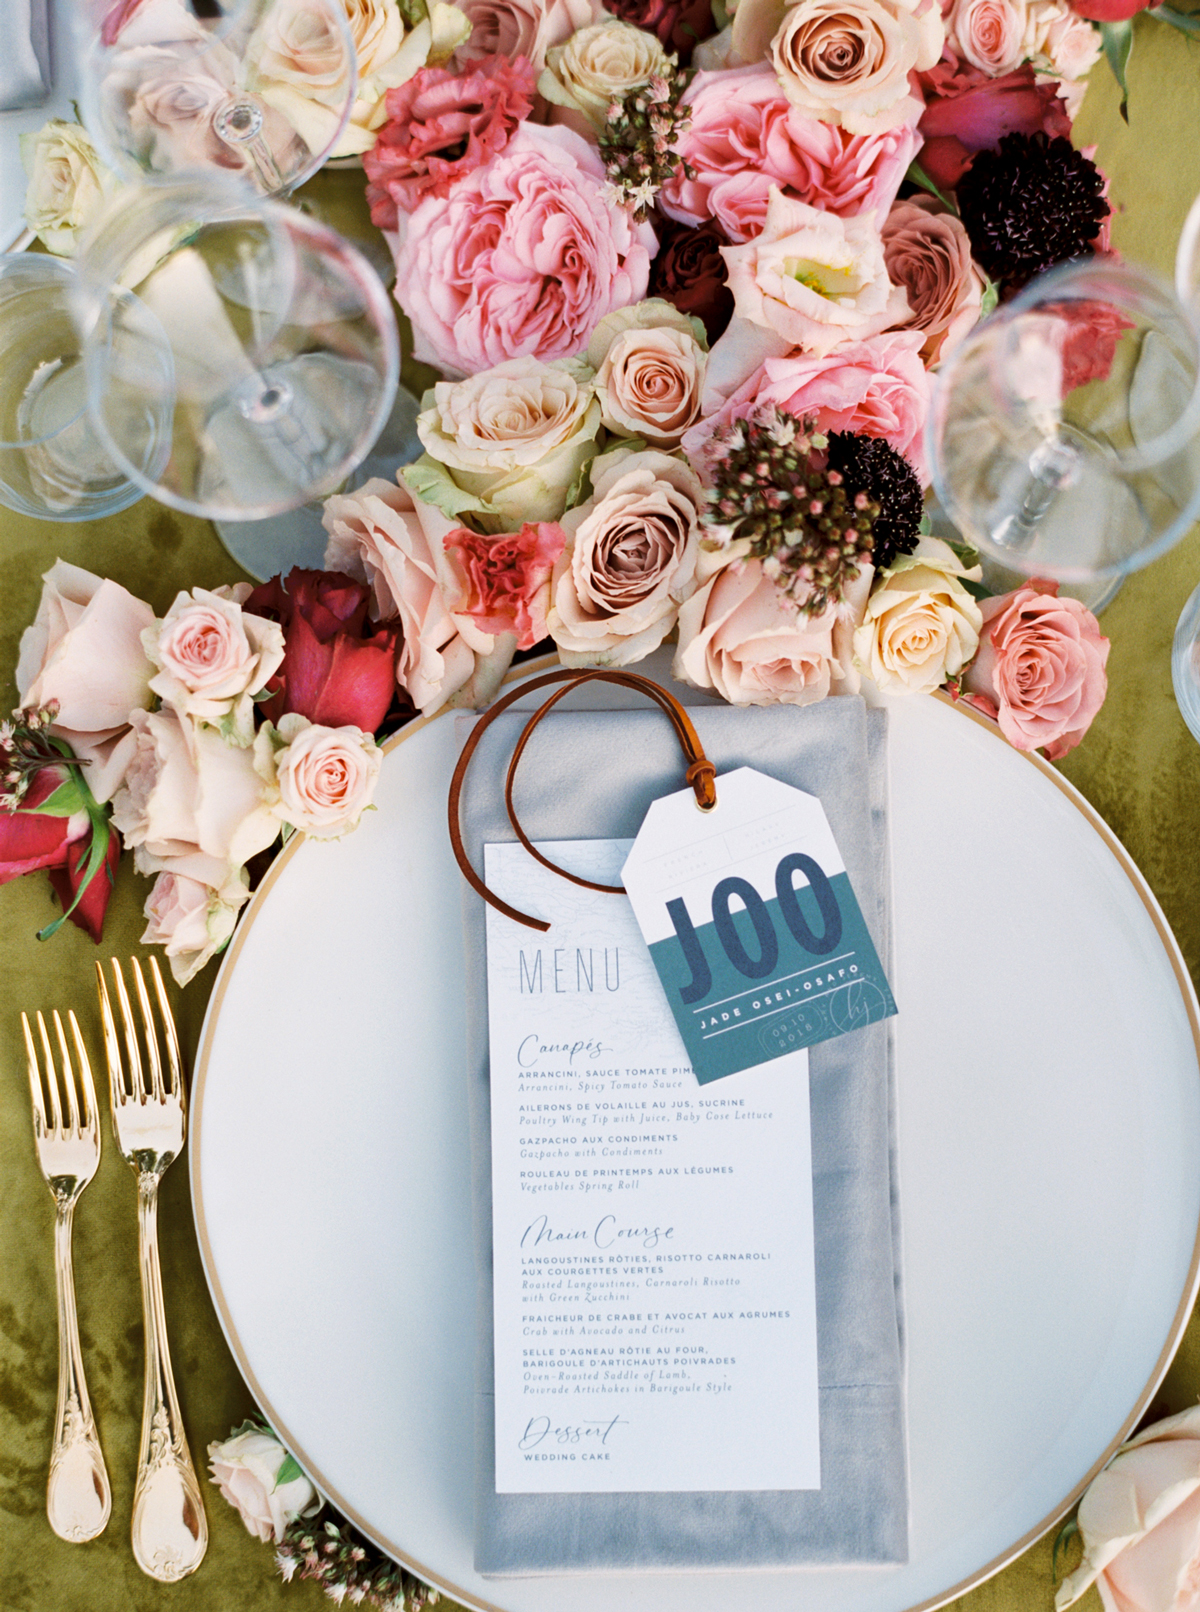 luggage tags escort tags on placesettings with floral decor